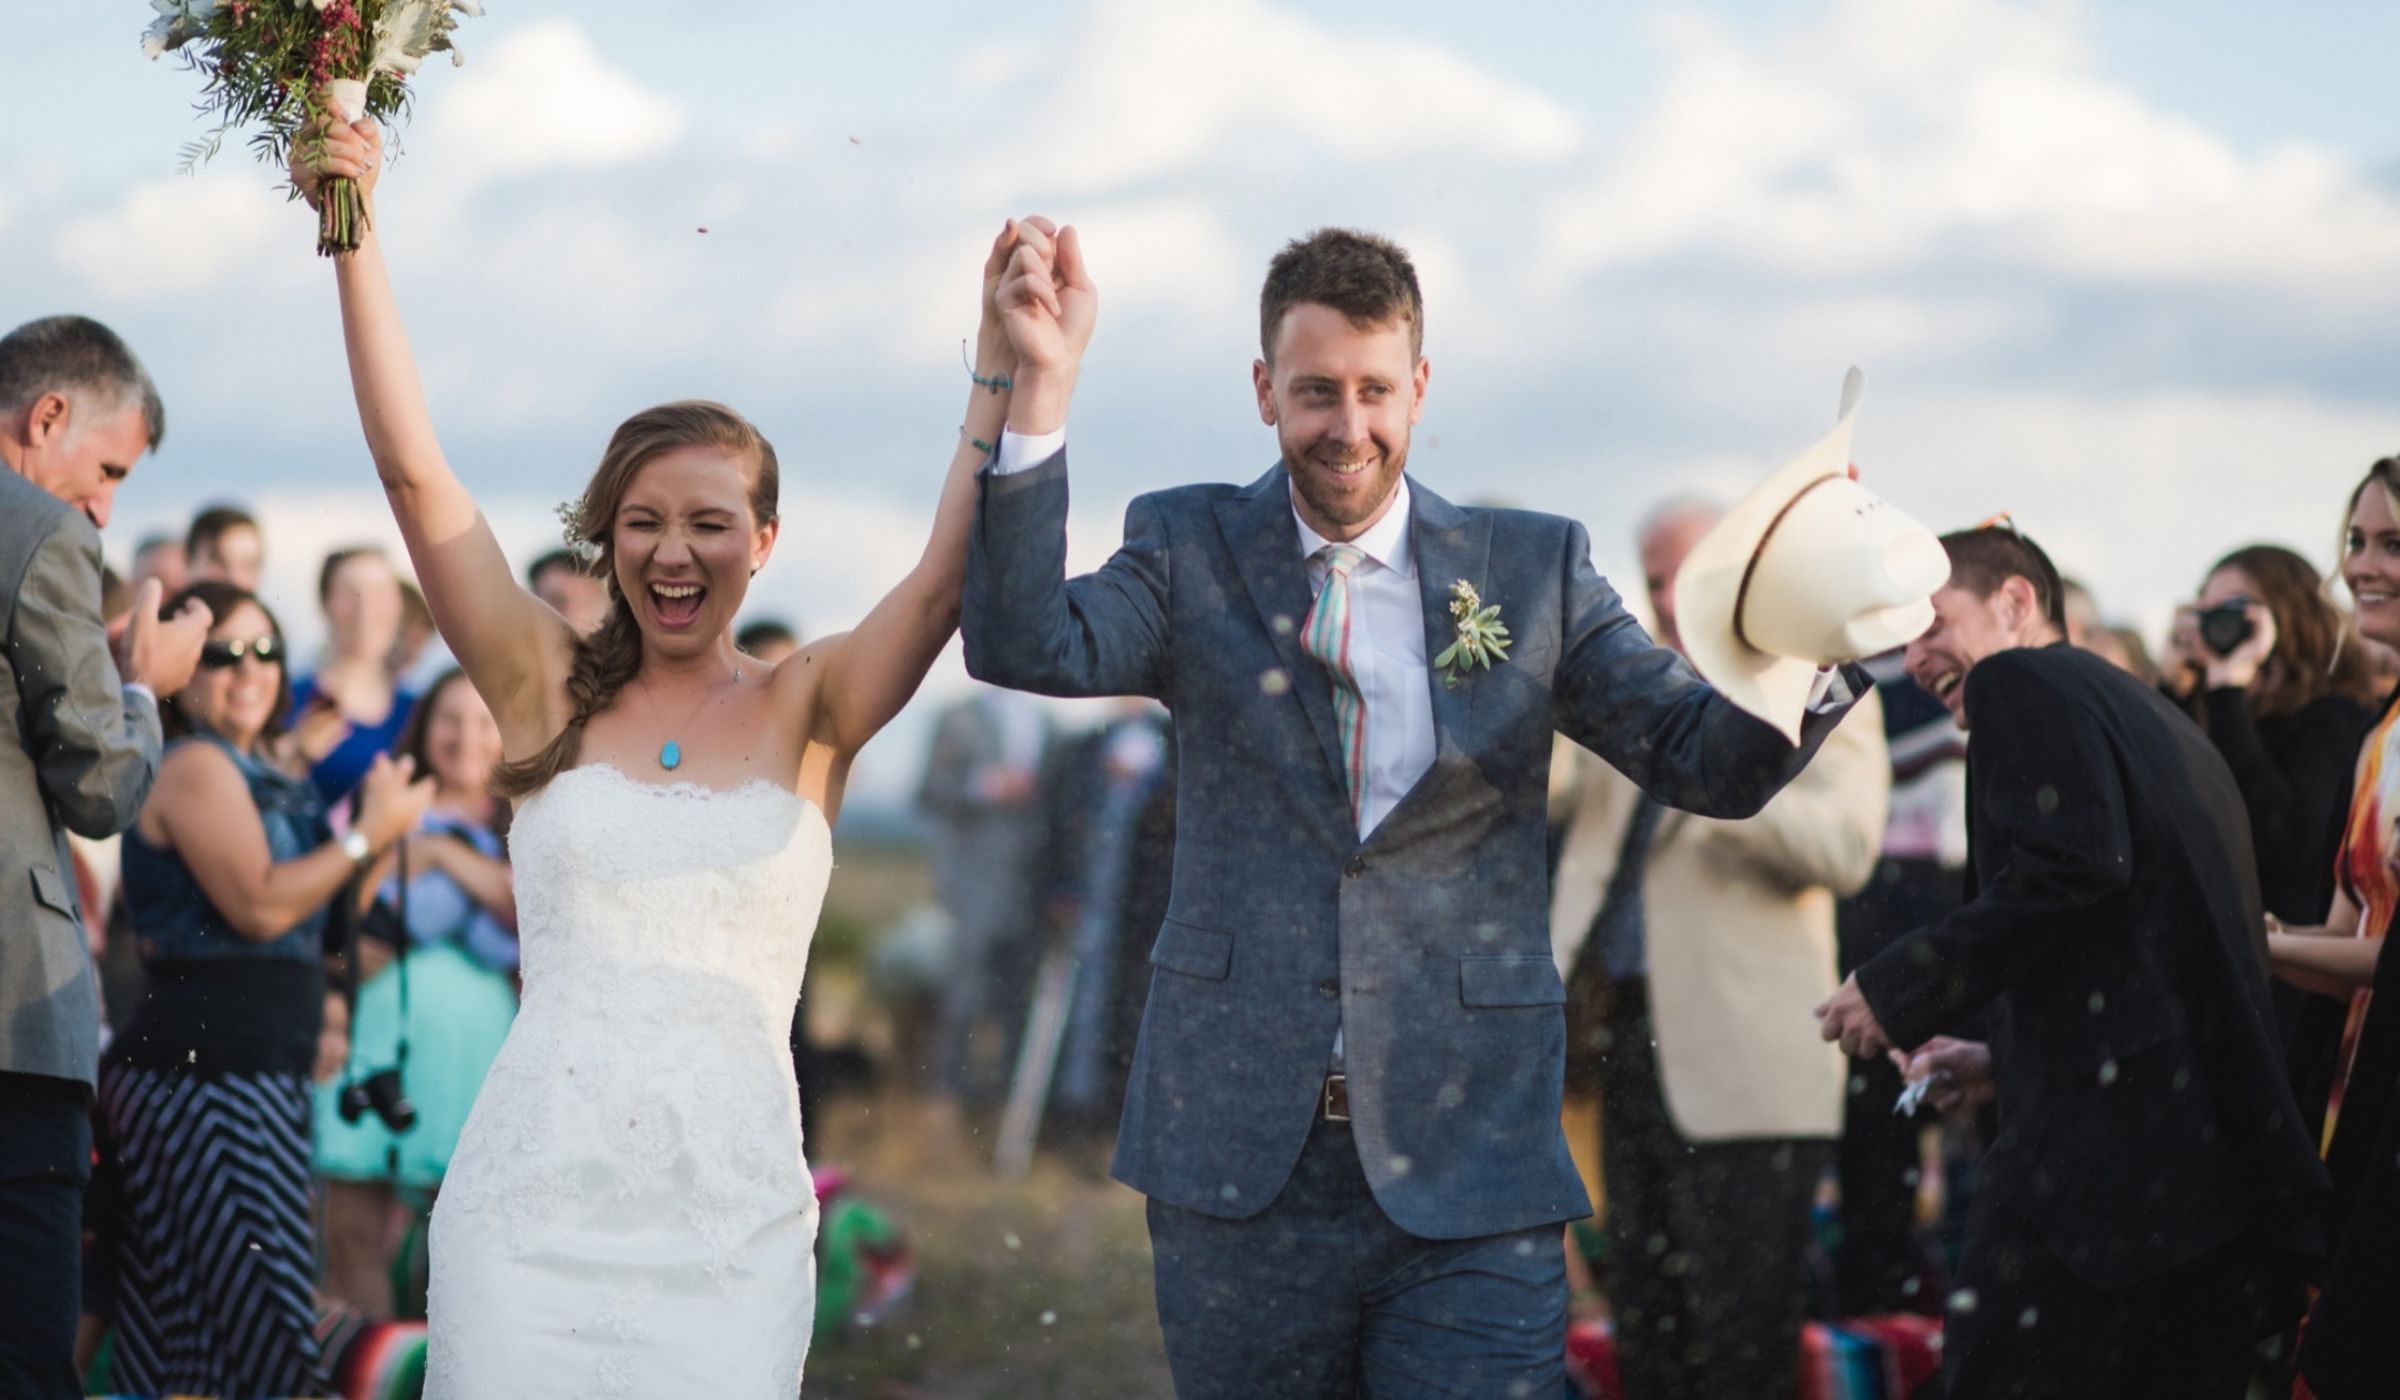 What Should Your Recessional Song Be?